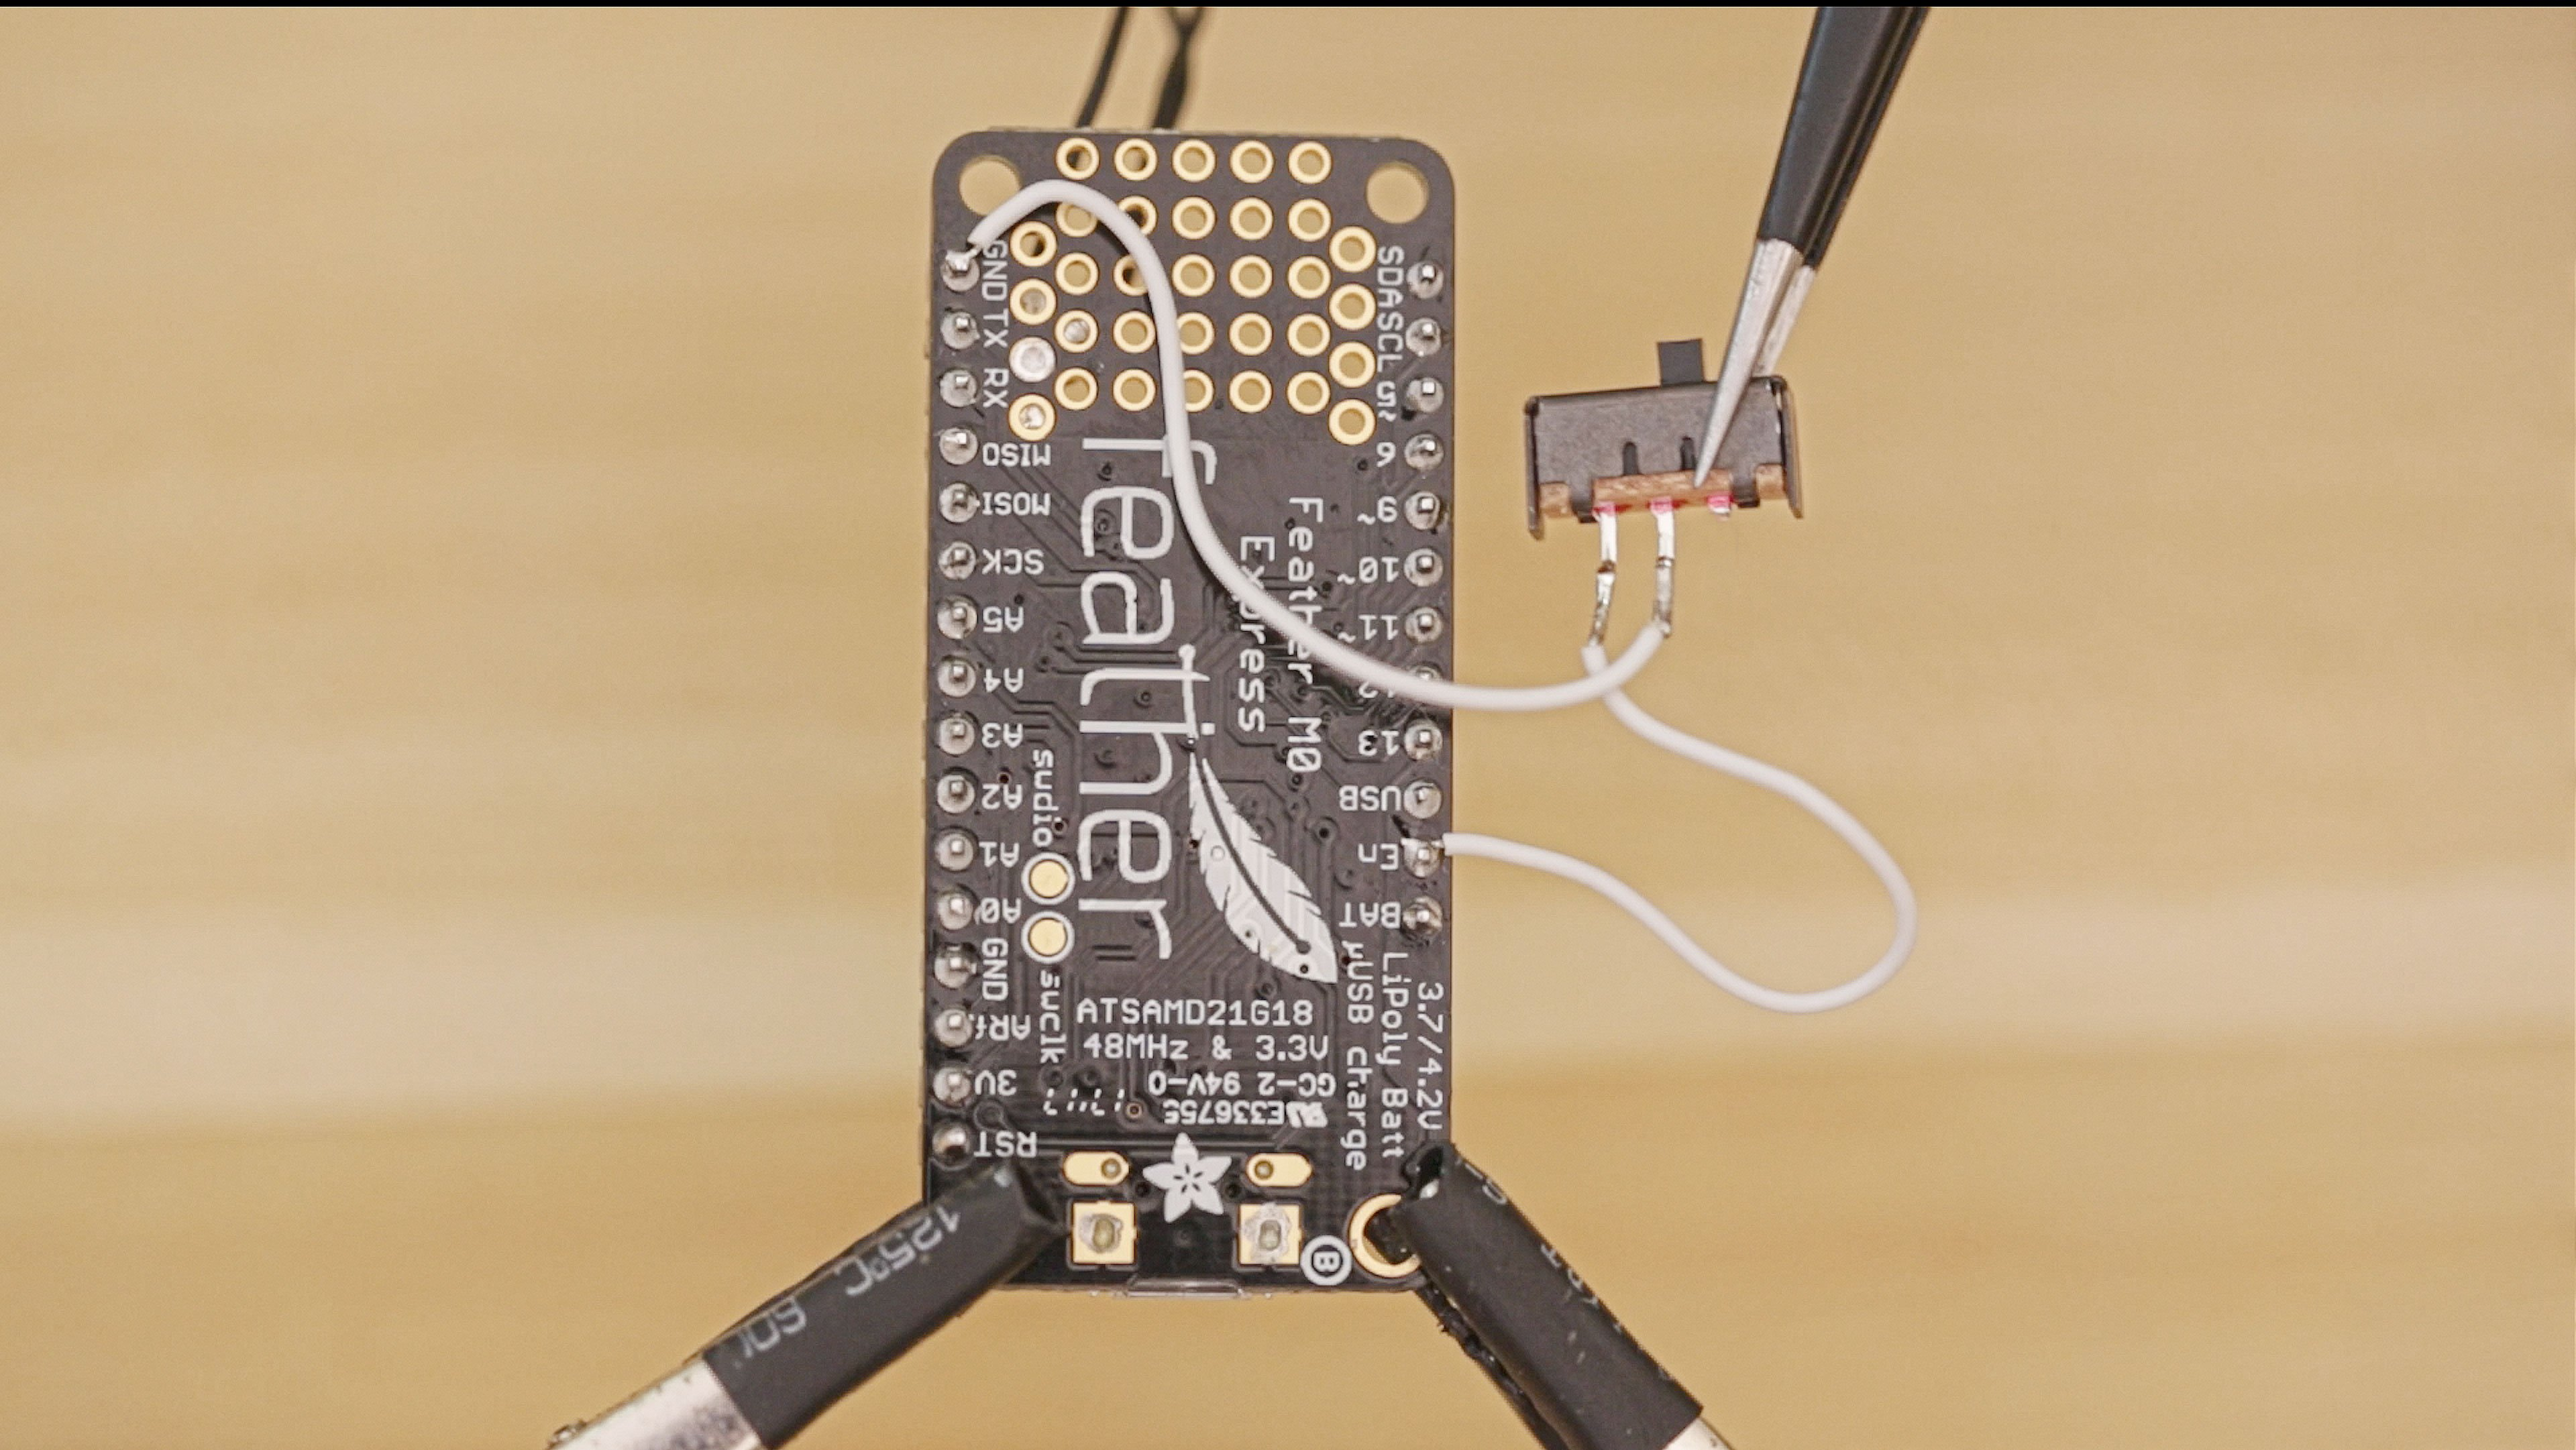 3d_printing_slide-switch-board-solder.jpg